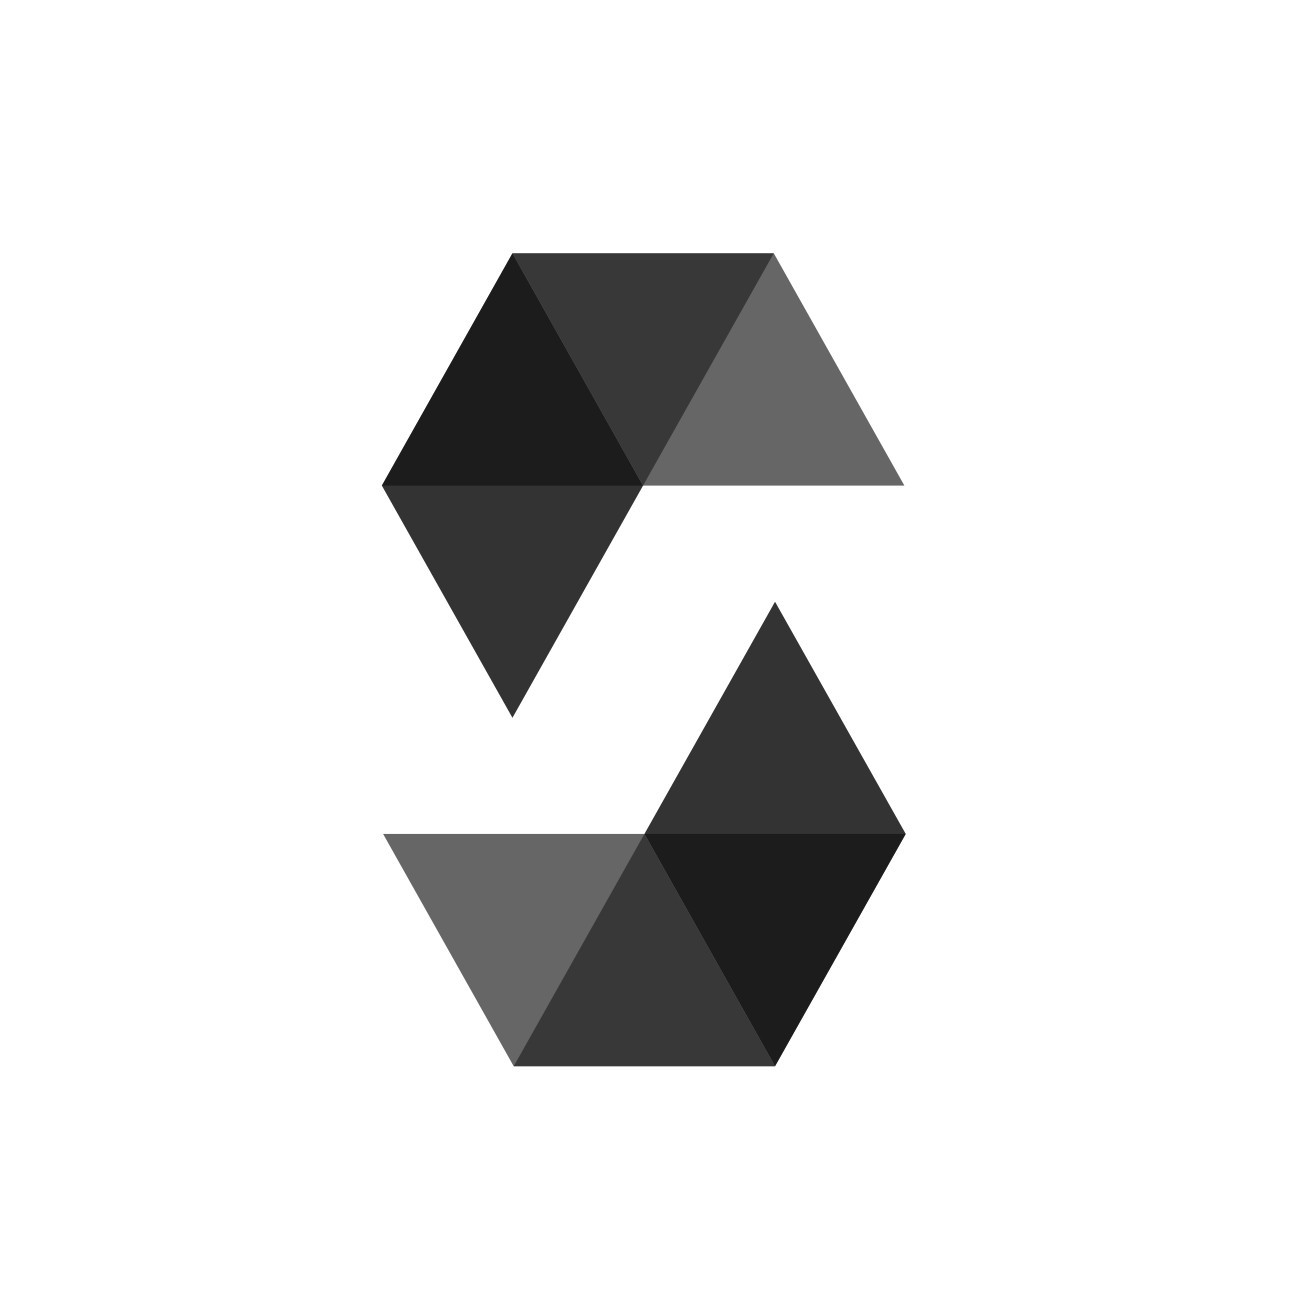 solidity smart contract language ethereum